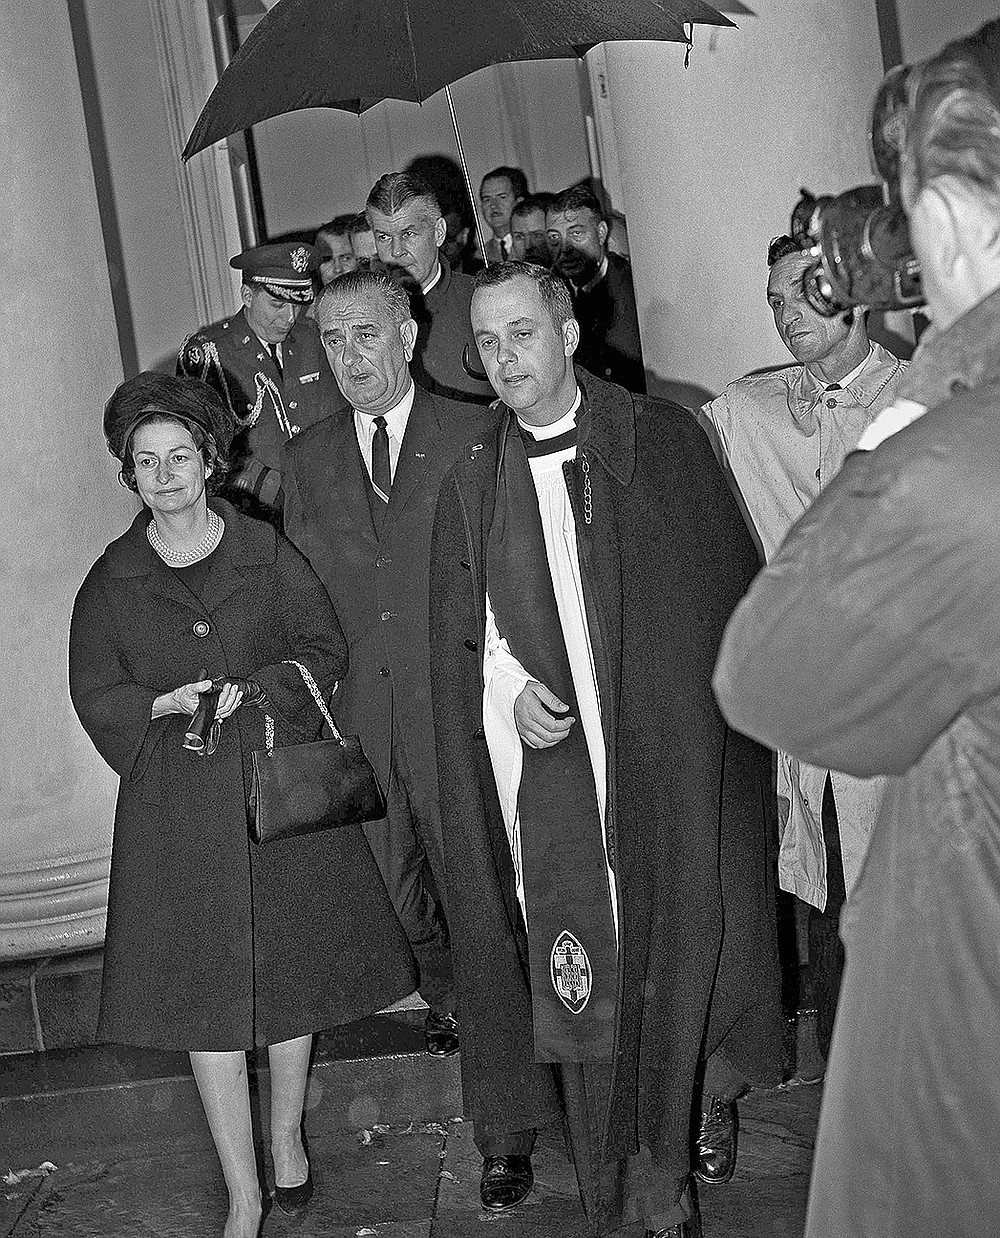 FILE - In this Nov. 23, 1963 file photo, President Lyndon Johnson and his wife, Lady Bird, leave St. John's Episcopal Church in Washington after attending special services. With them is the rector, the Rev. John C. Harper. Johnson was sworn in as president shortly after the assasisnation of John F. Kennedy in Dallas on Nov. 22. (AP Photo)